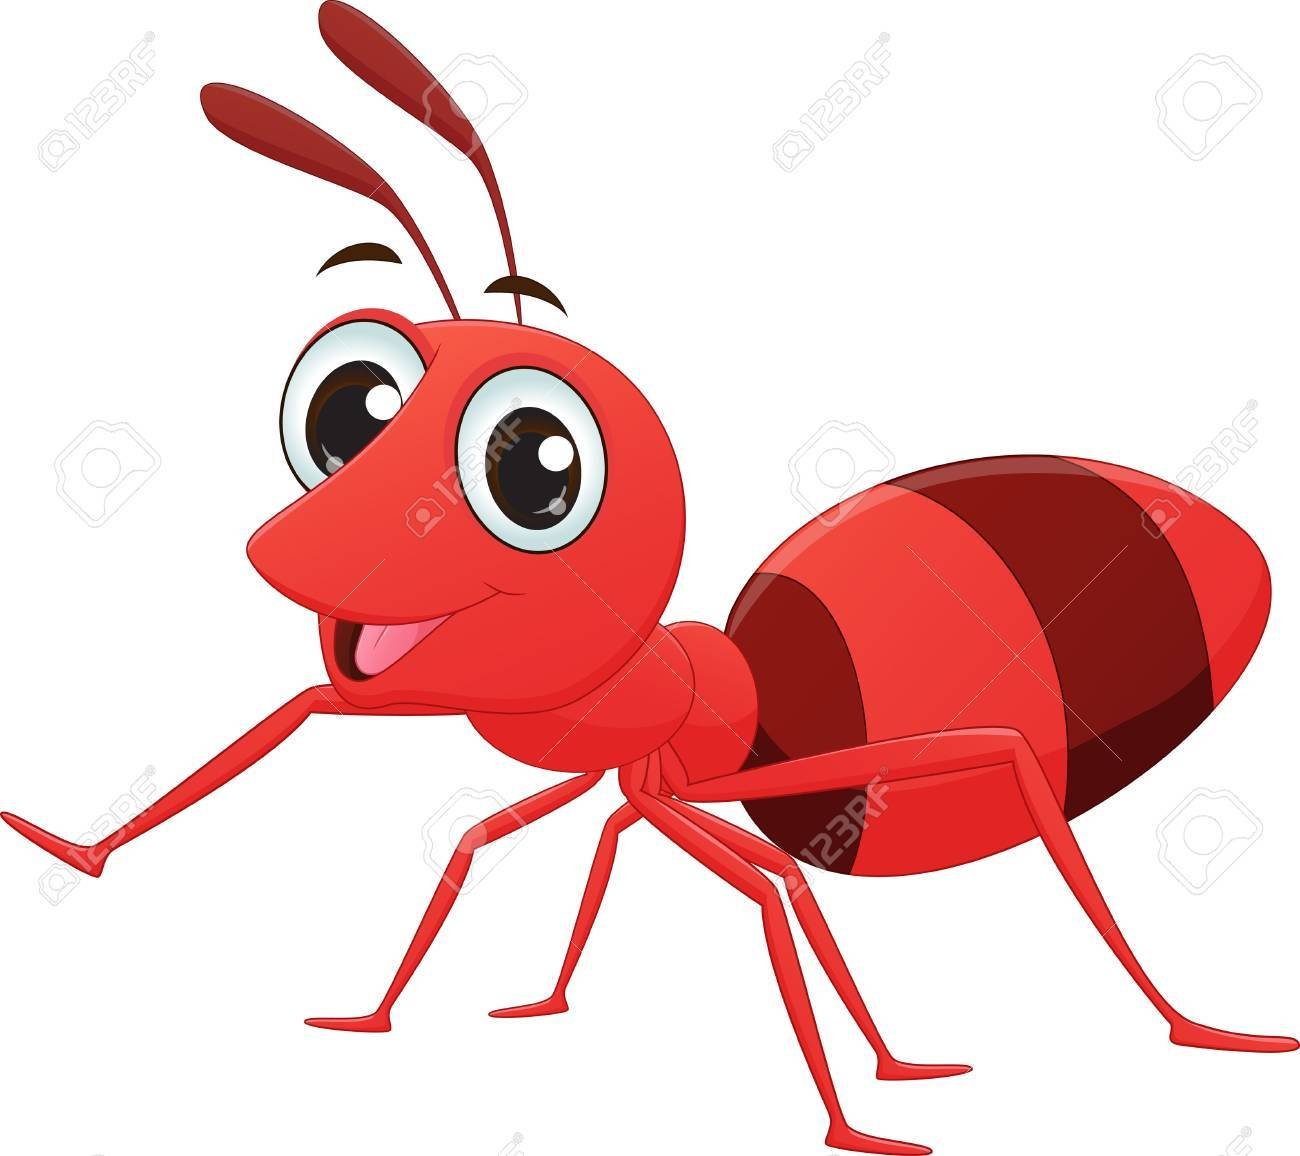 hight resolution of 1300x1156 red ant clipart vector